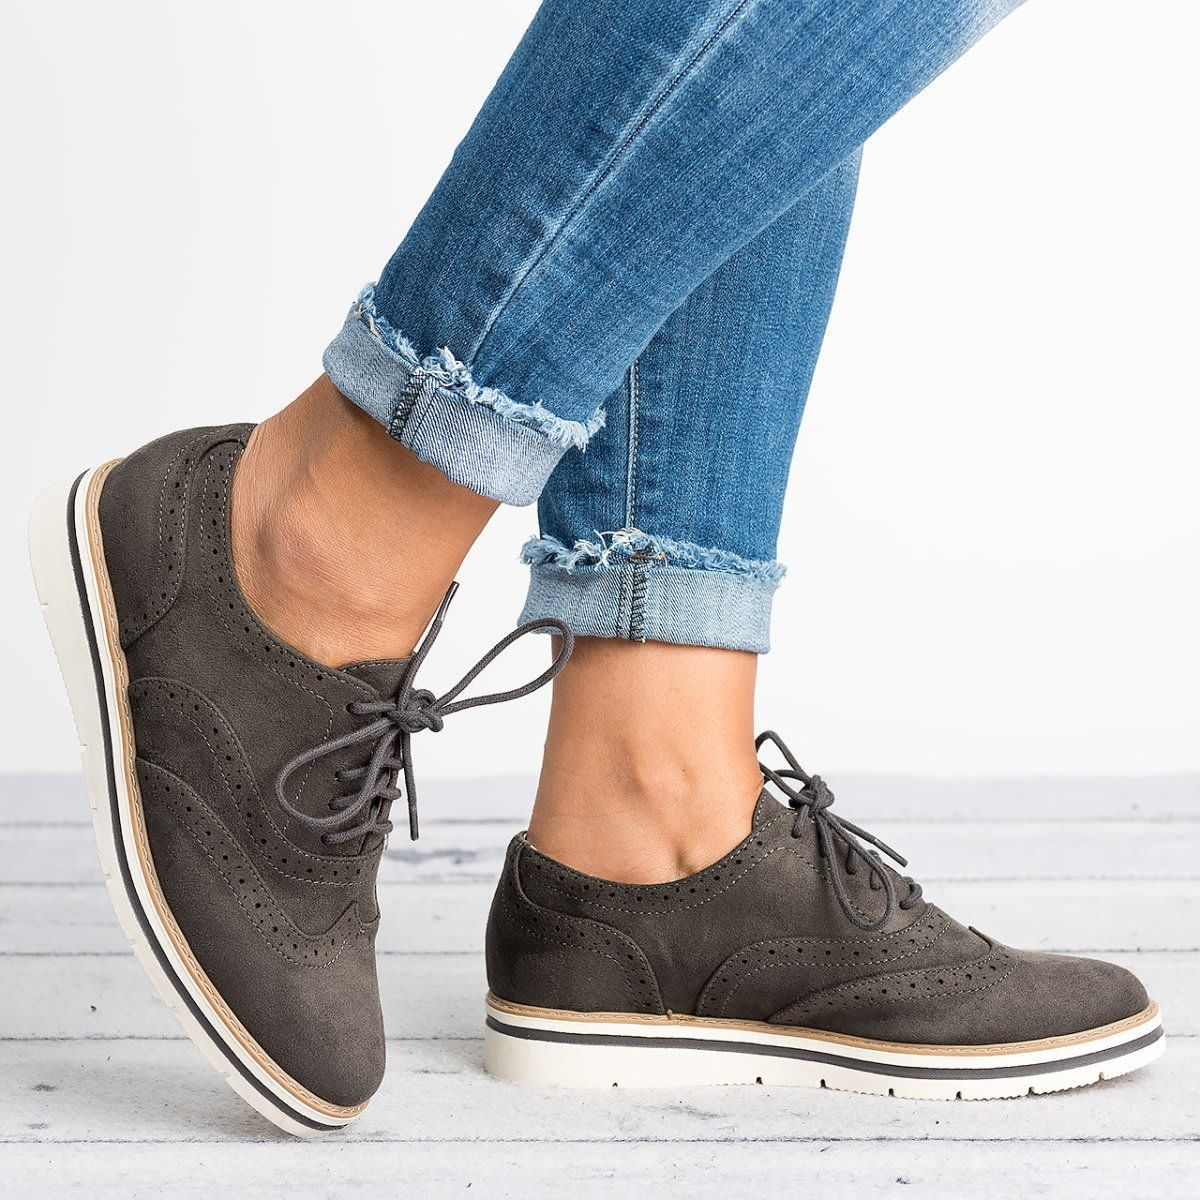 52d70601647 Womens Fashion Suede Artificial Leather Brogue Shoes in 2019